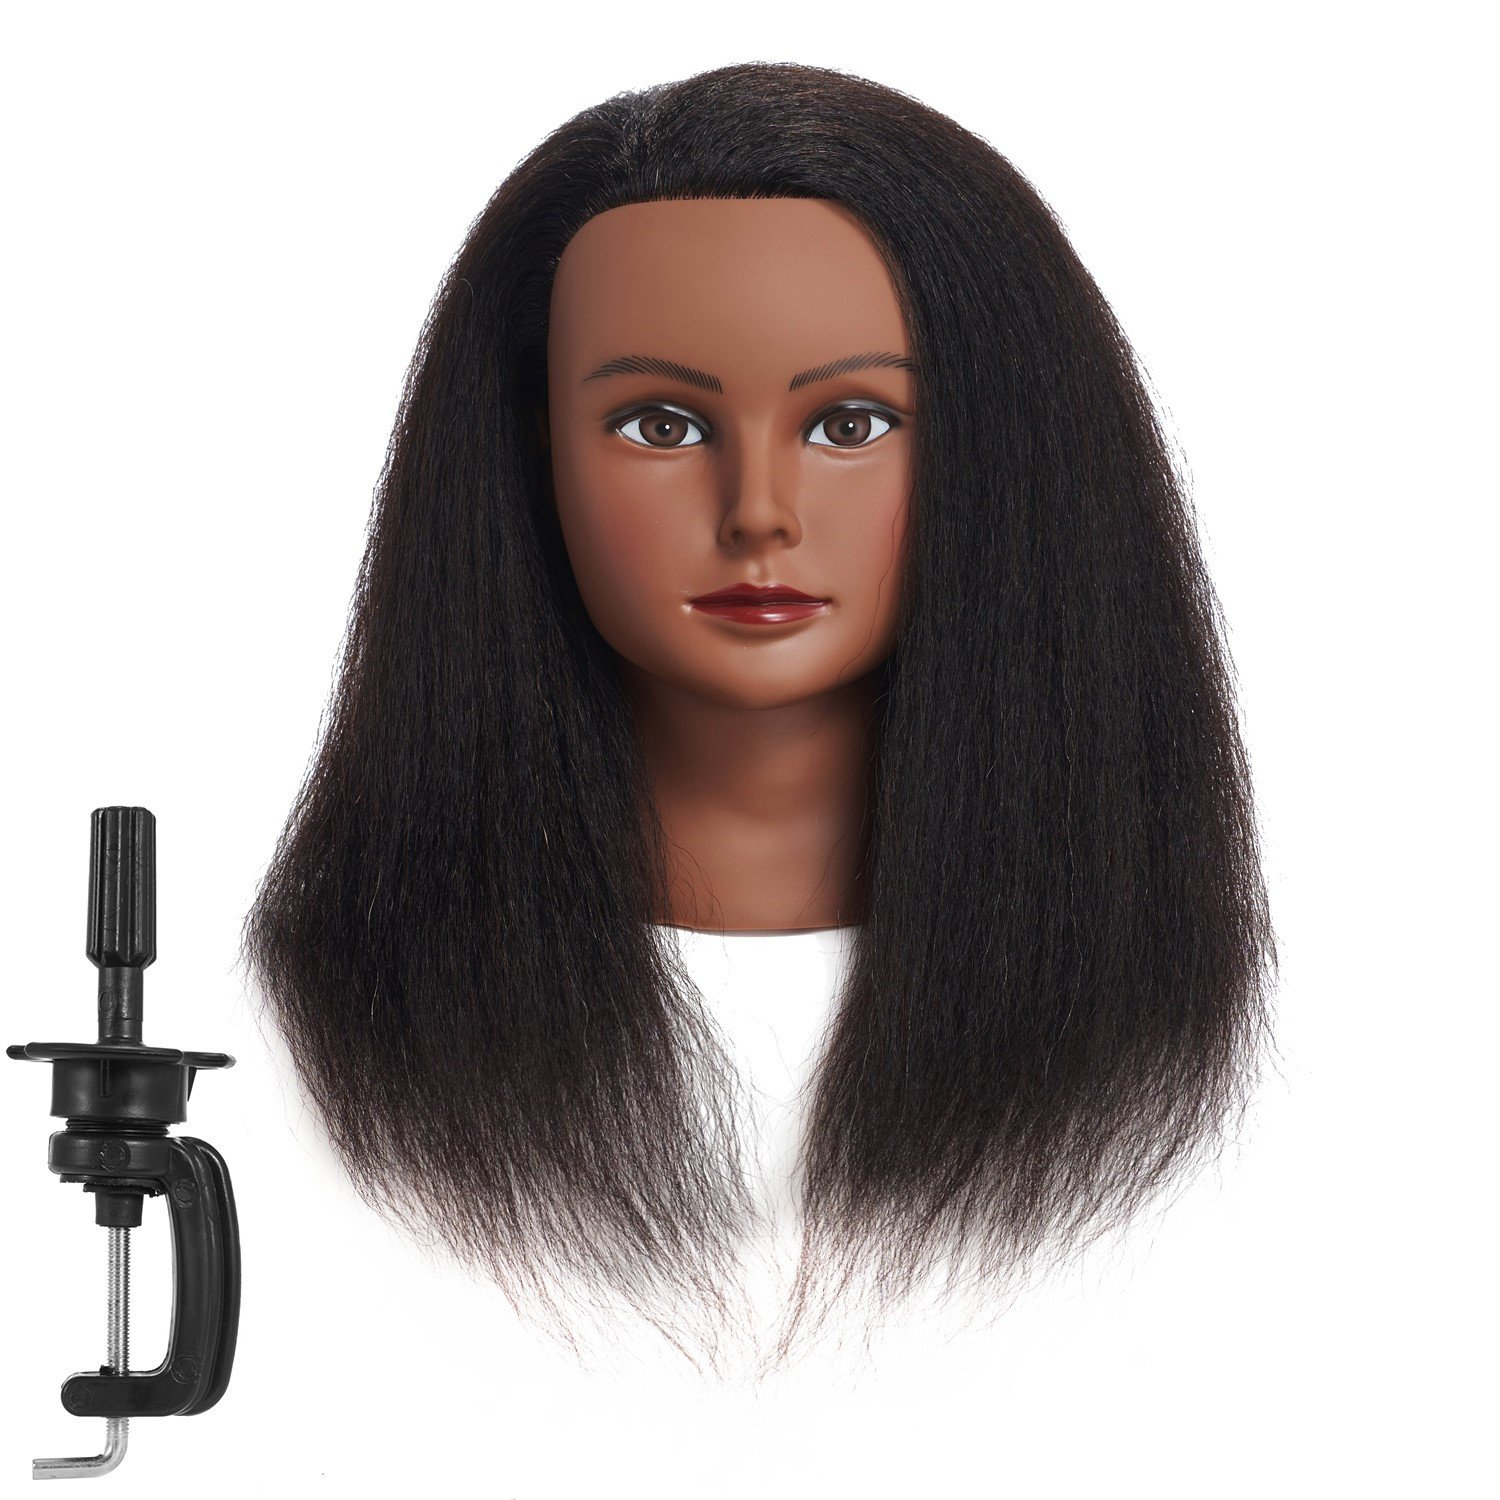 Traininghead 100% Real Hair Female Mannequin Head Training Head Styling Cosmetology Manikin Head Doll Head With Free Clamp (2018B0214)